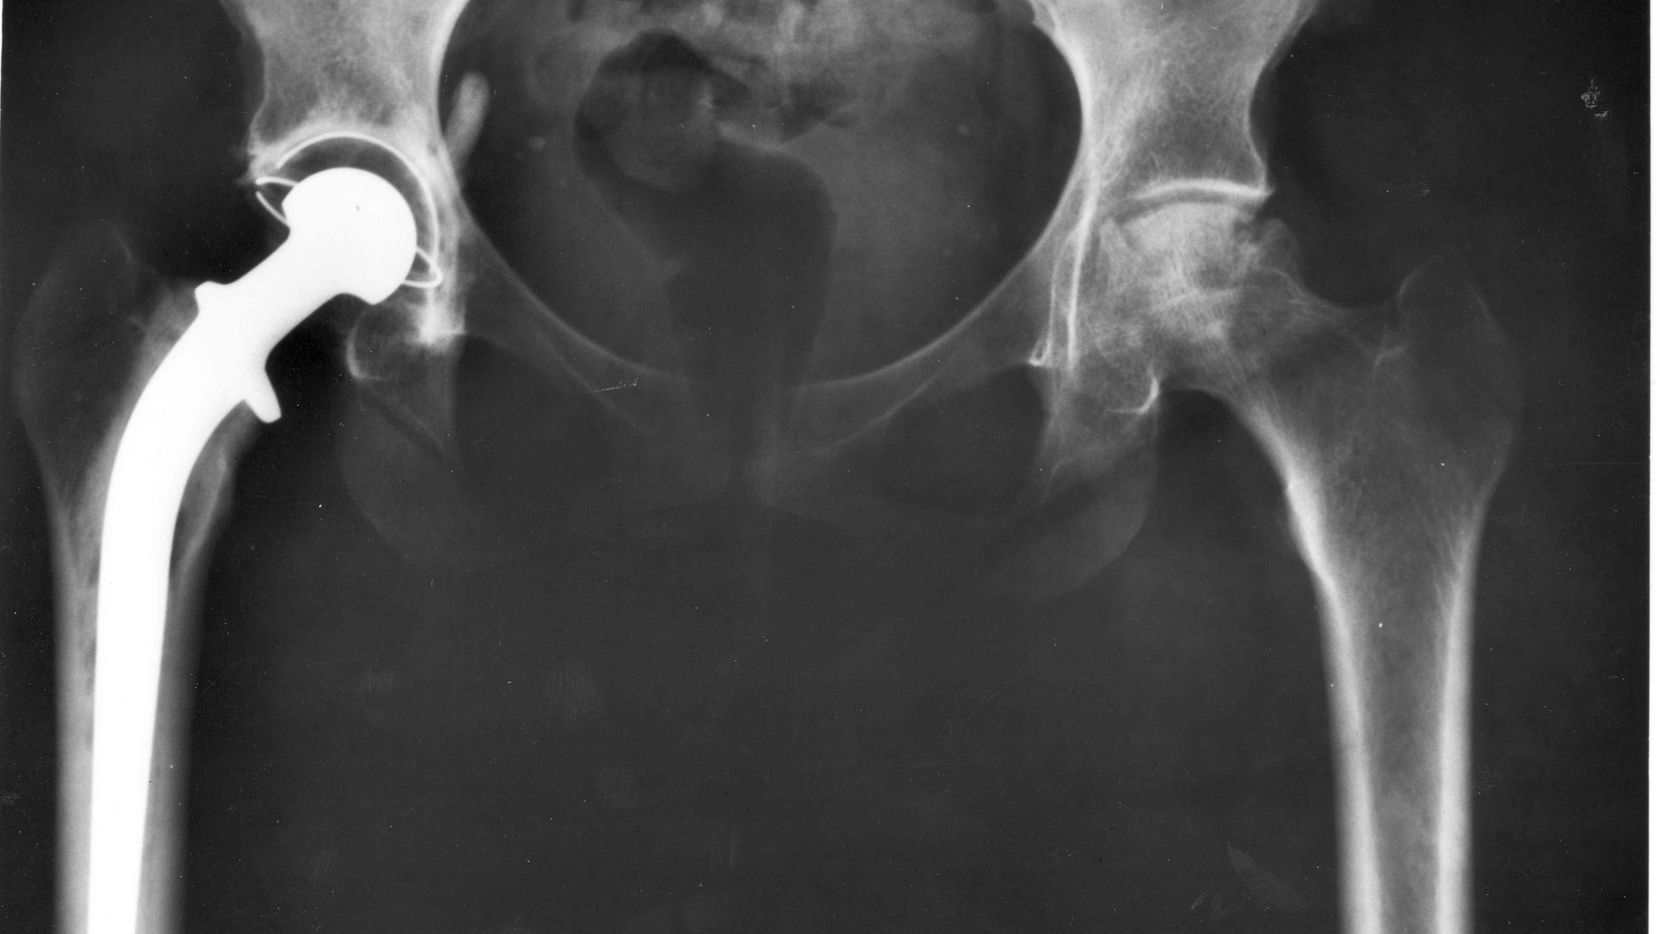 This National Institutes of Health X-ray of a pelvis shows a total hip joint replacement. More than 330,000 such surgeries are performed annually.